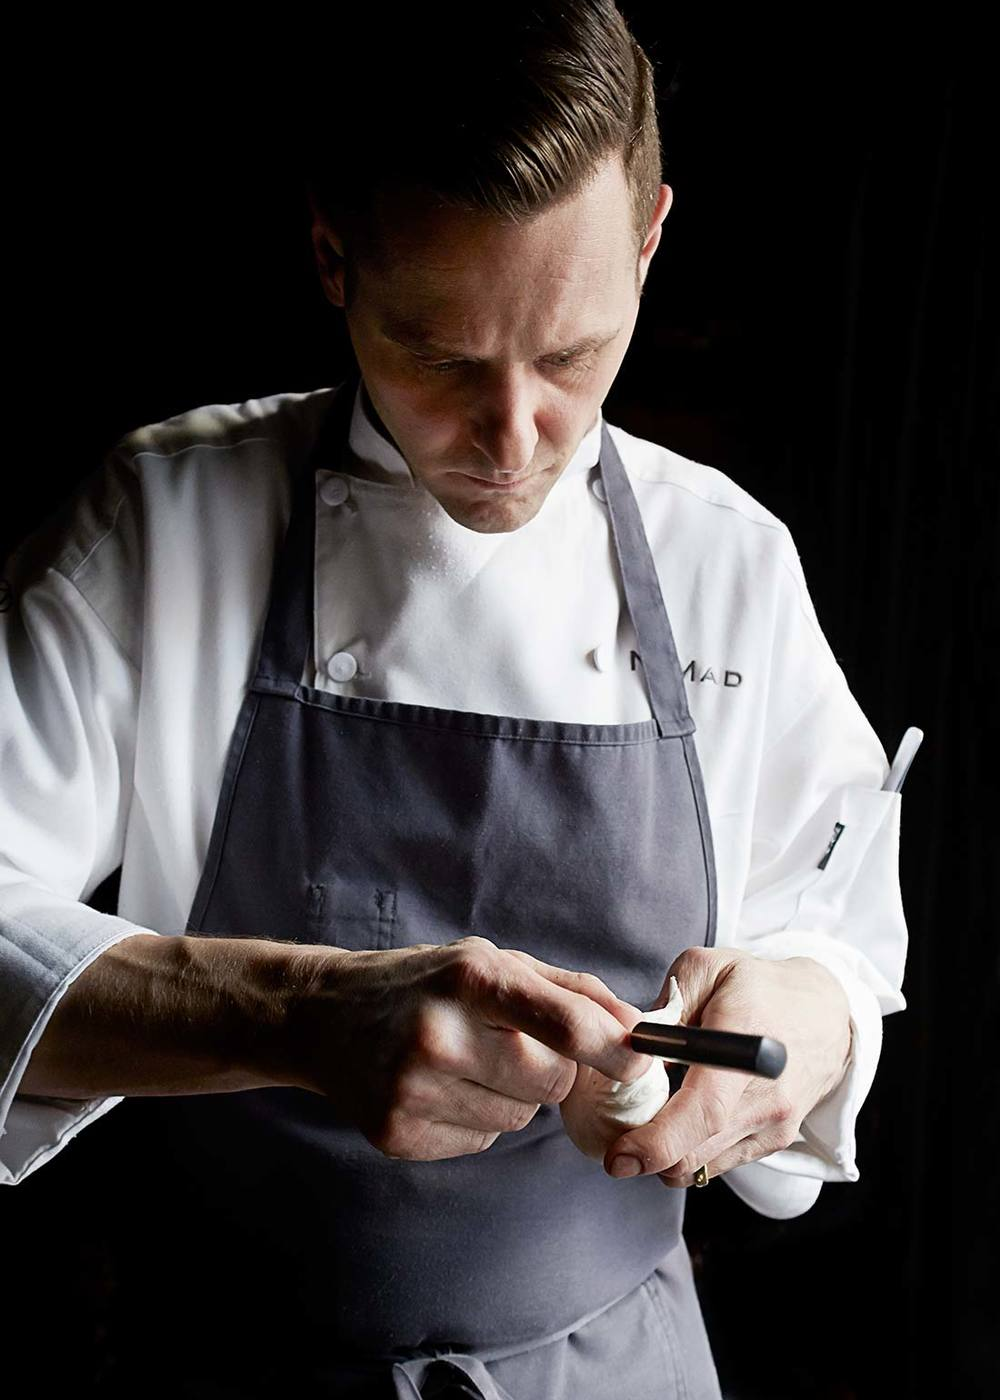 Chef Lockwood - Bocuse d'Or